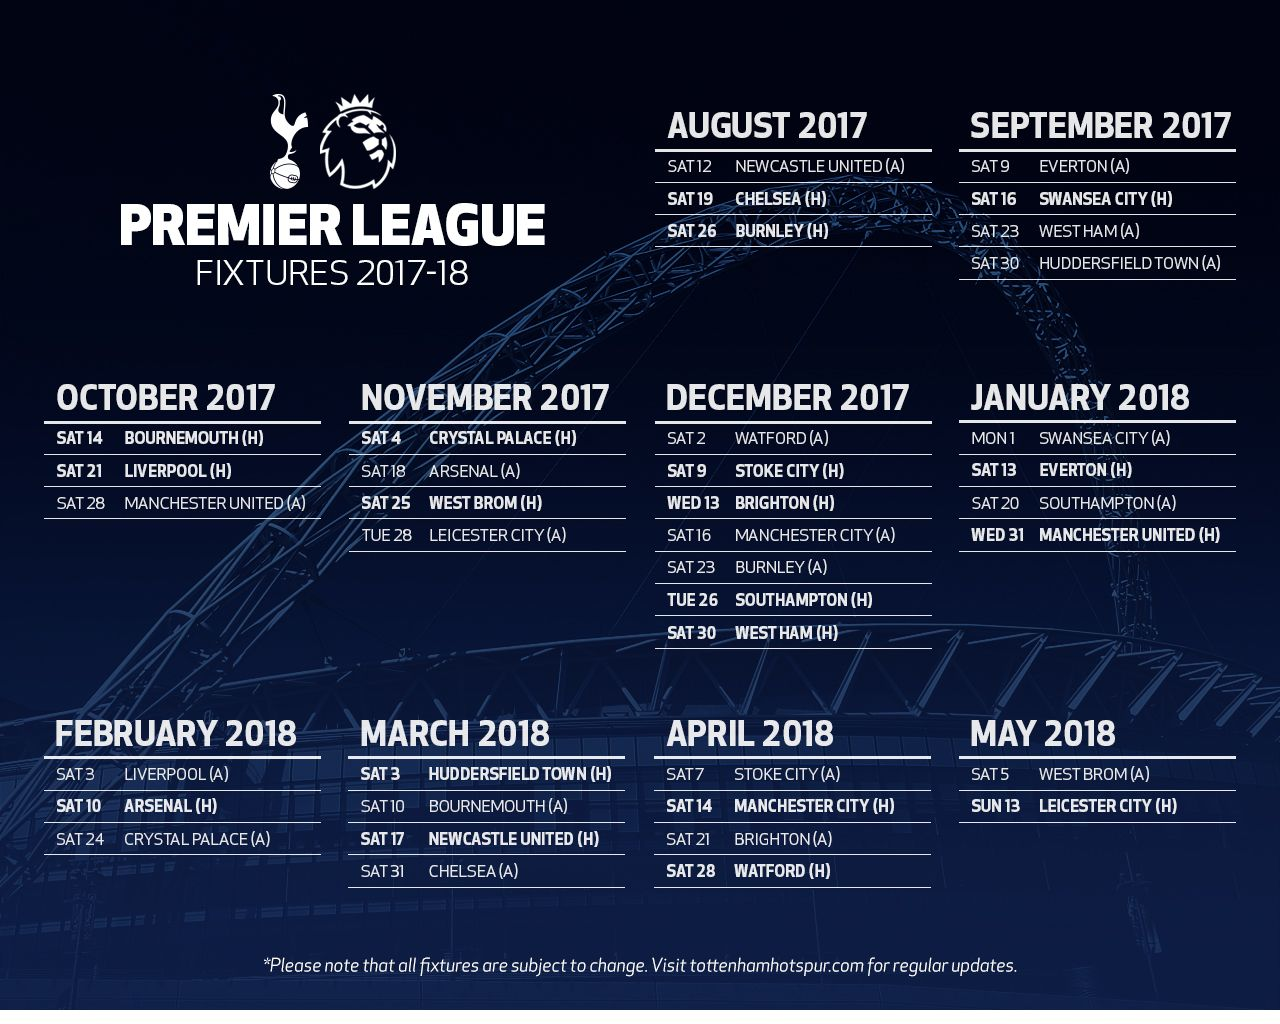 tottenham fixtures photos — superepus news